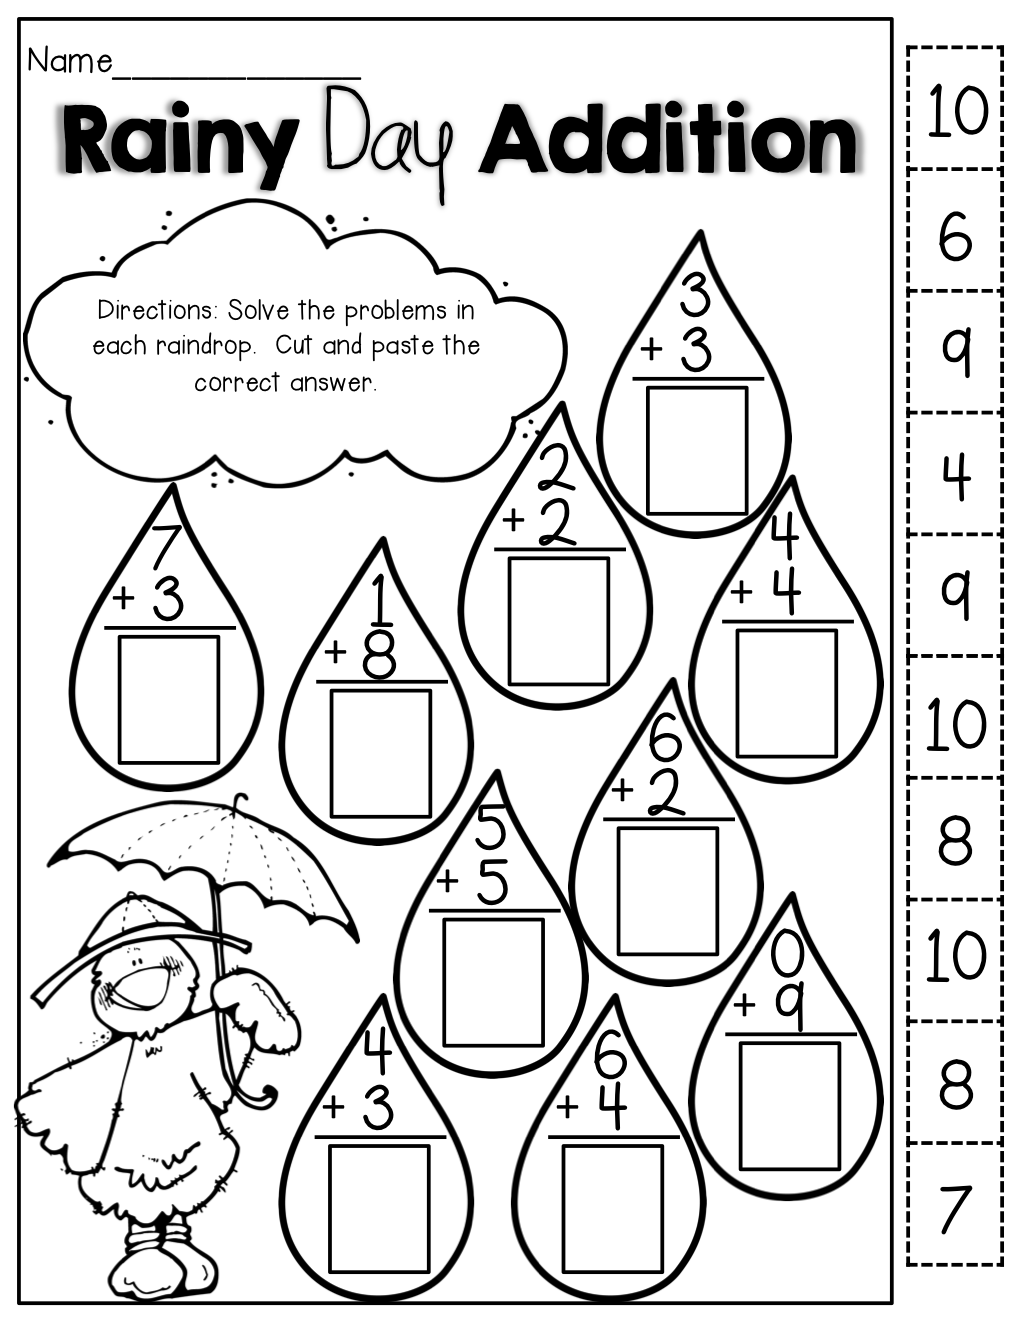 worksheet Cut And Paste Worksheets For Kindergarten rainy day addition cut and paste kinderland collaborative paste